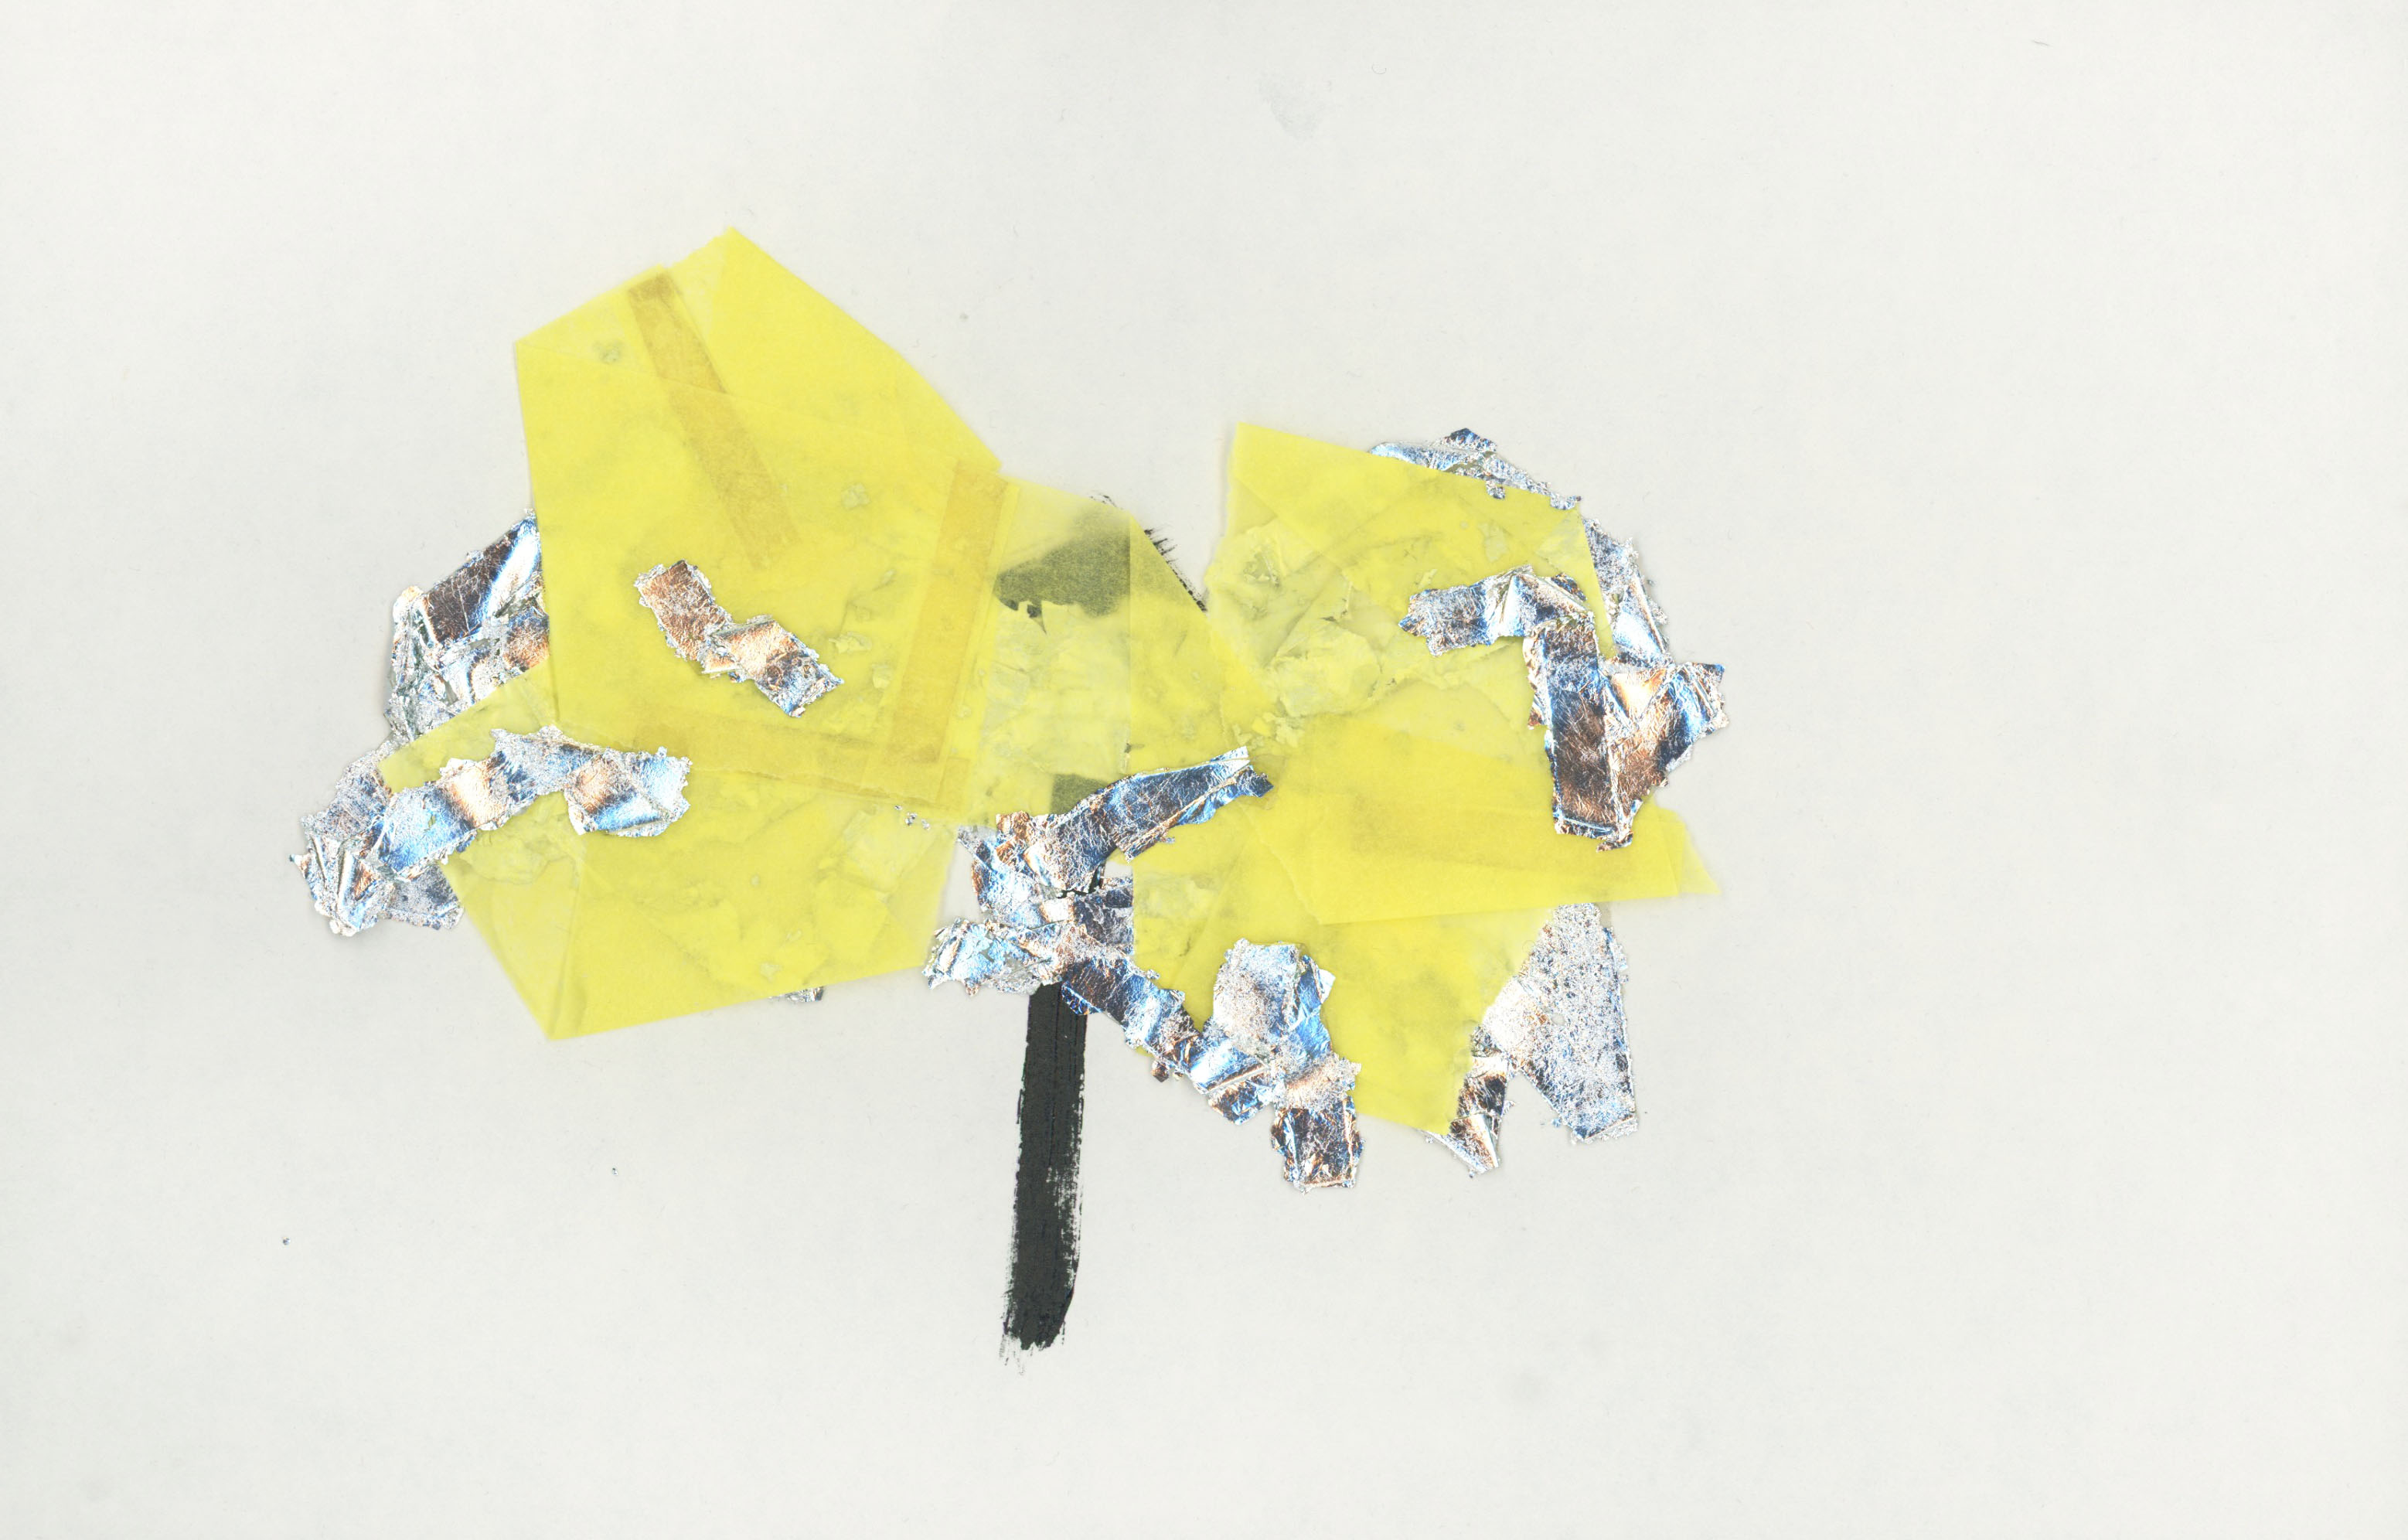 23. Gilding flakes, double sided tape, tissue and enamel on paper. 28 x 18cm